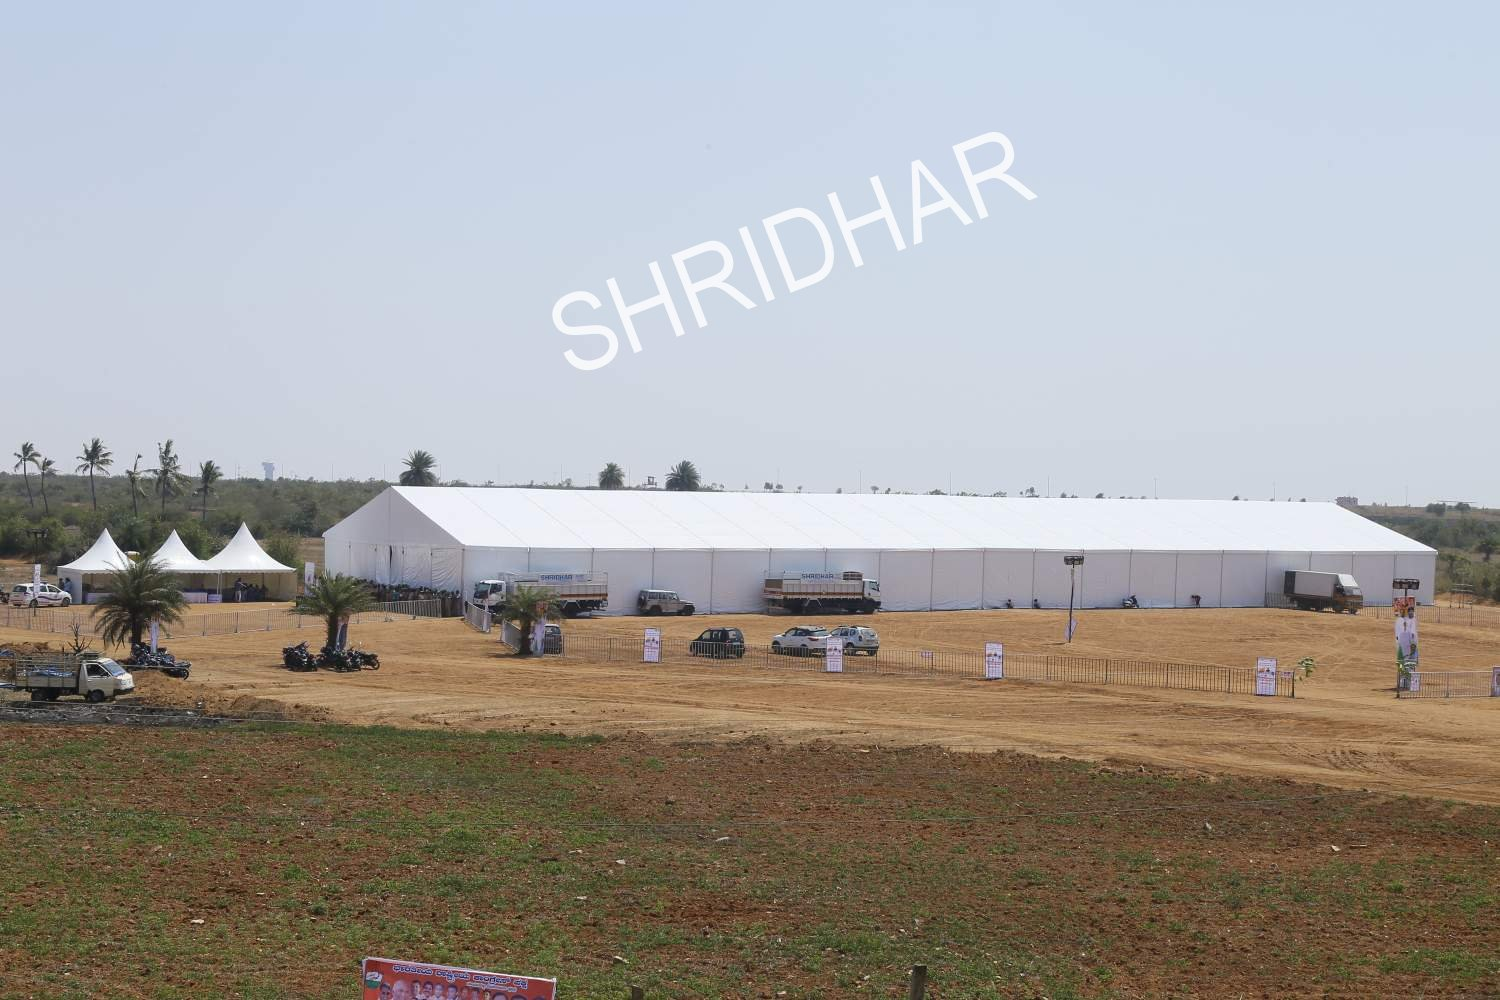 german hangers super structures for rent for conferences in bangalore shridhar tent house